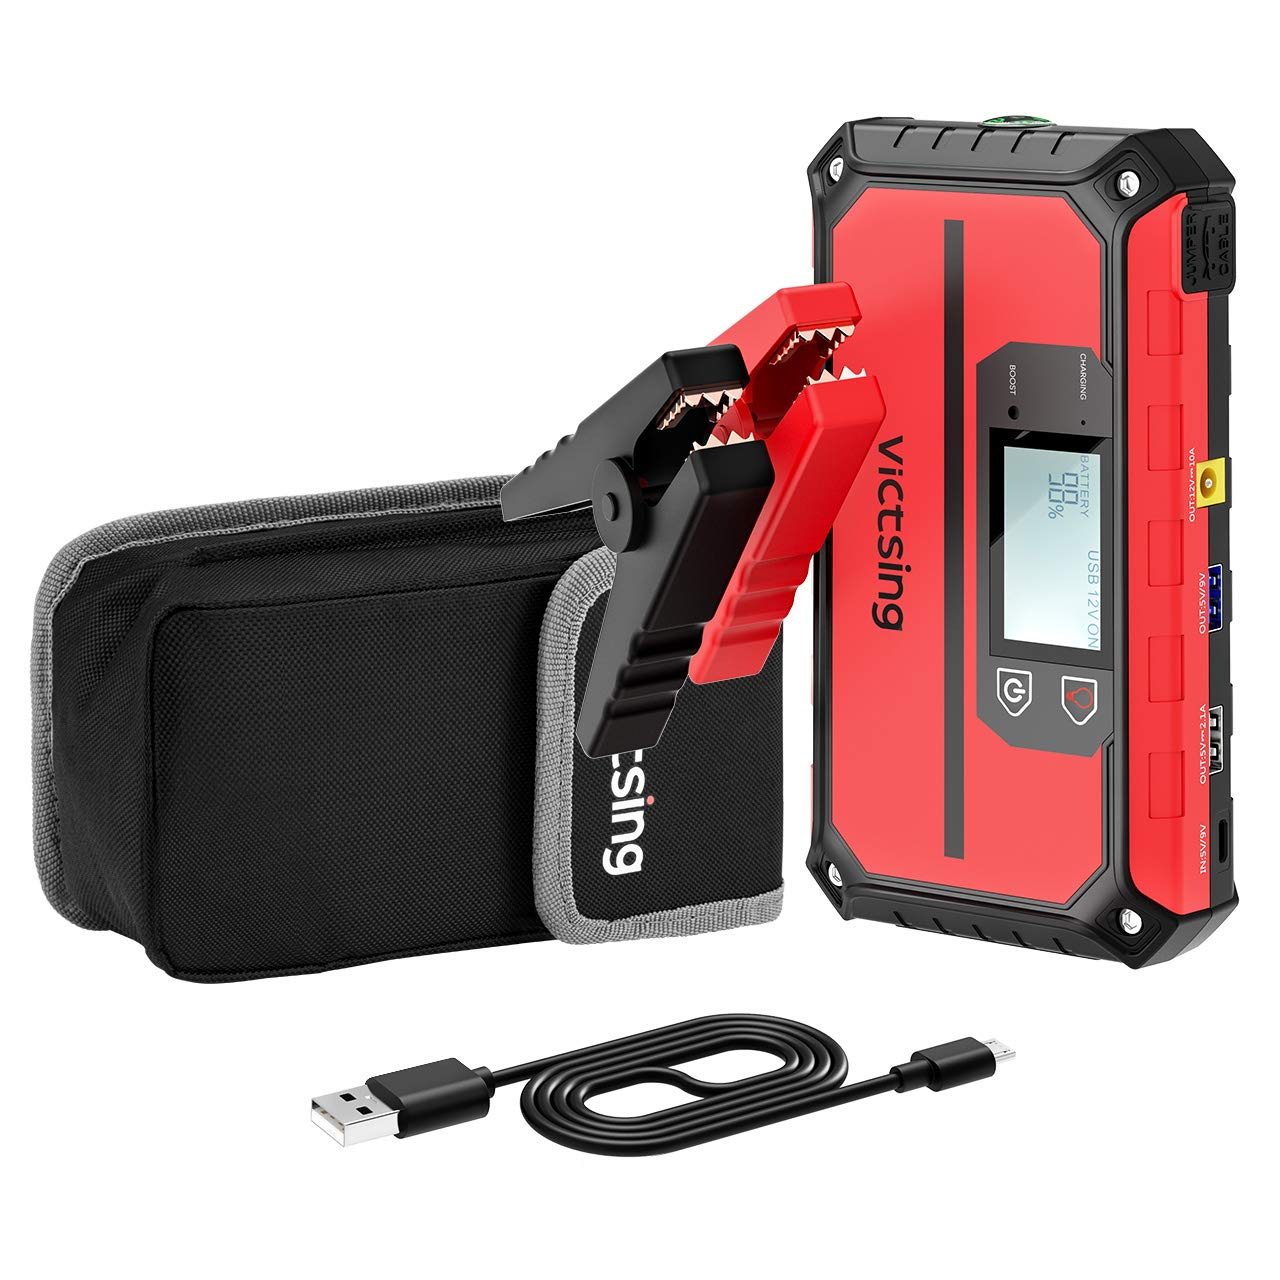 VicTsing 1000A Peak 20800mAh Portable Car Jump Starter (Up To 8.0L Gas, 6.0L Diesel Engine), 12V Auto Battery Booster,5 In 1 Compact Power Pack With QC3.0 Output, Built-in Compass And LED Light.